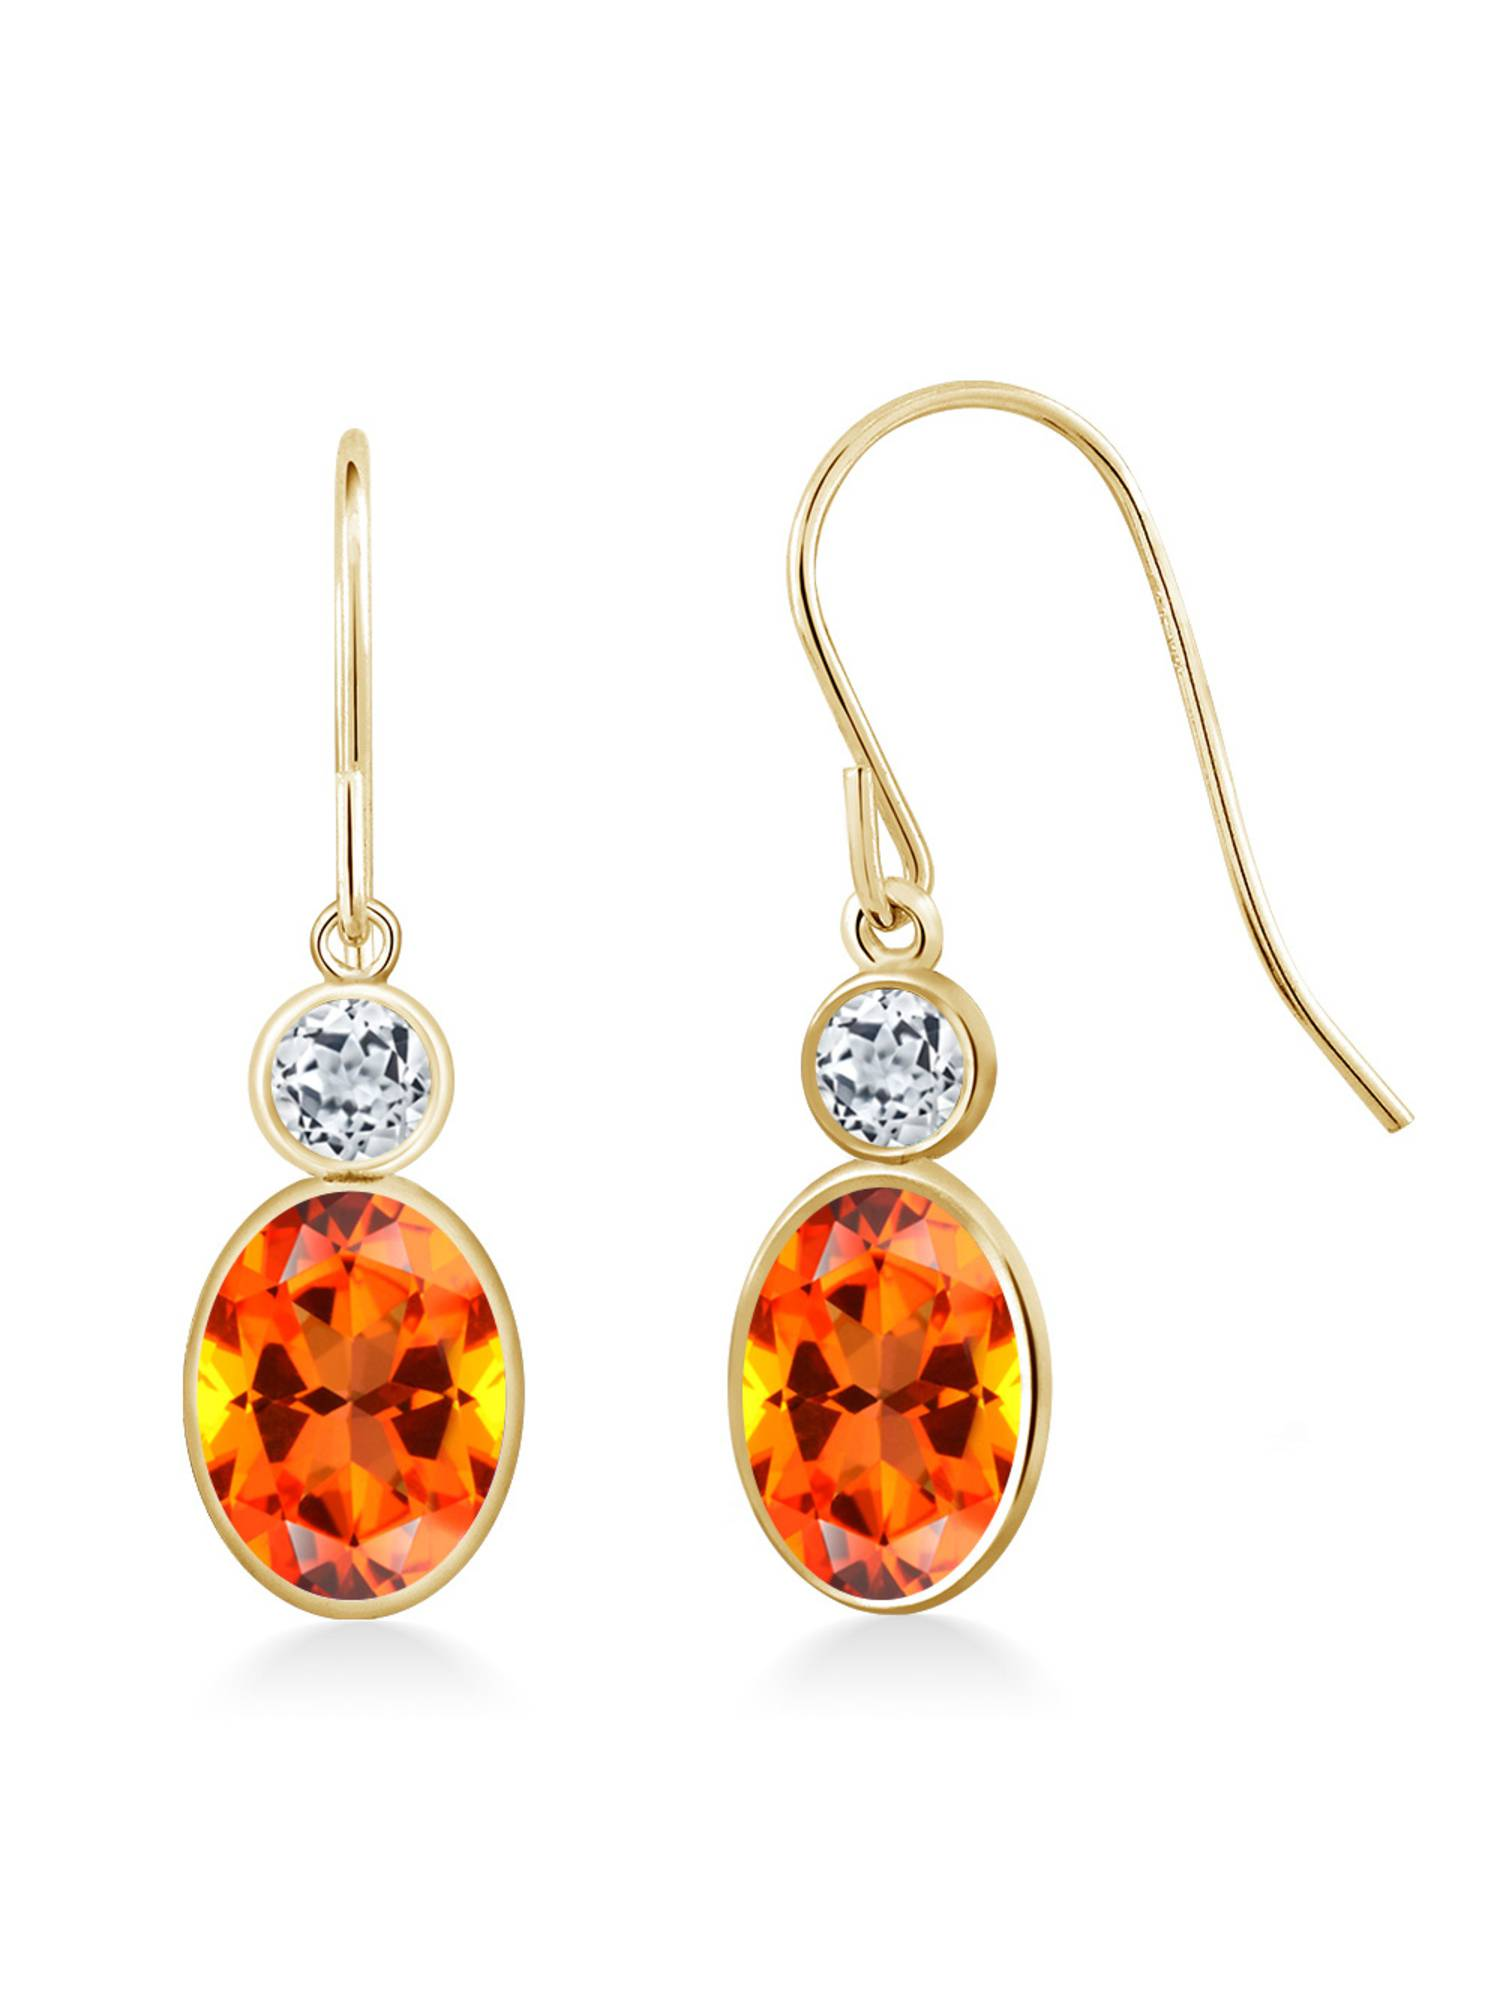 14K Yellow Gold Earrings Topaz Set with Oval Poppy Topaz from Swarovski by